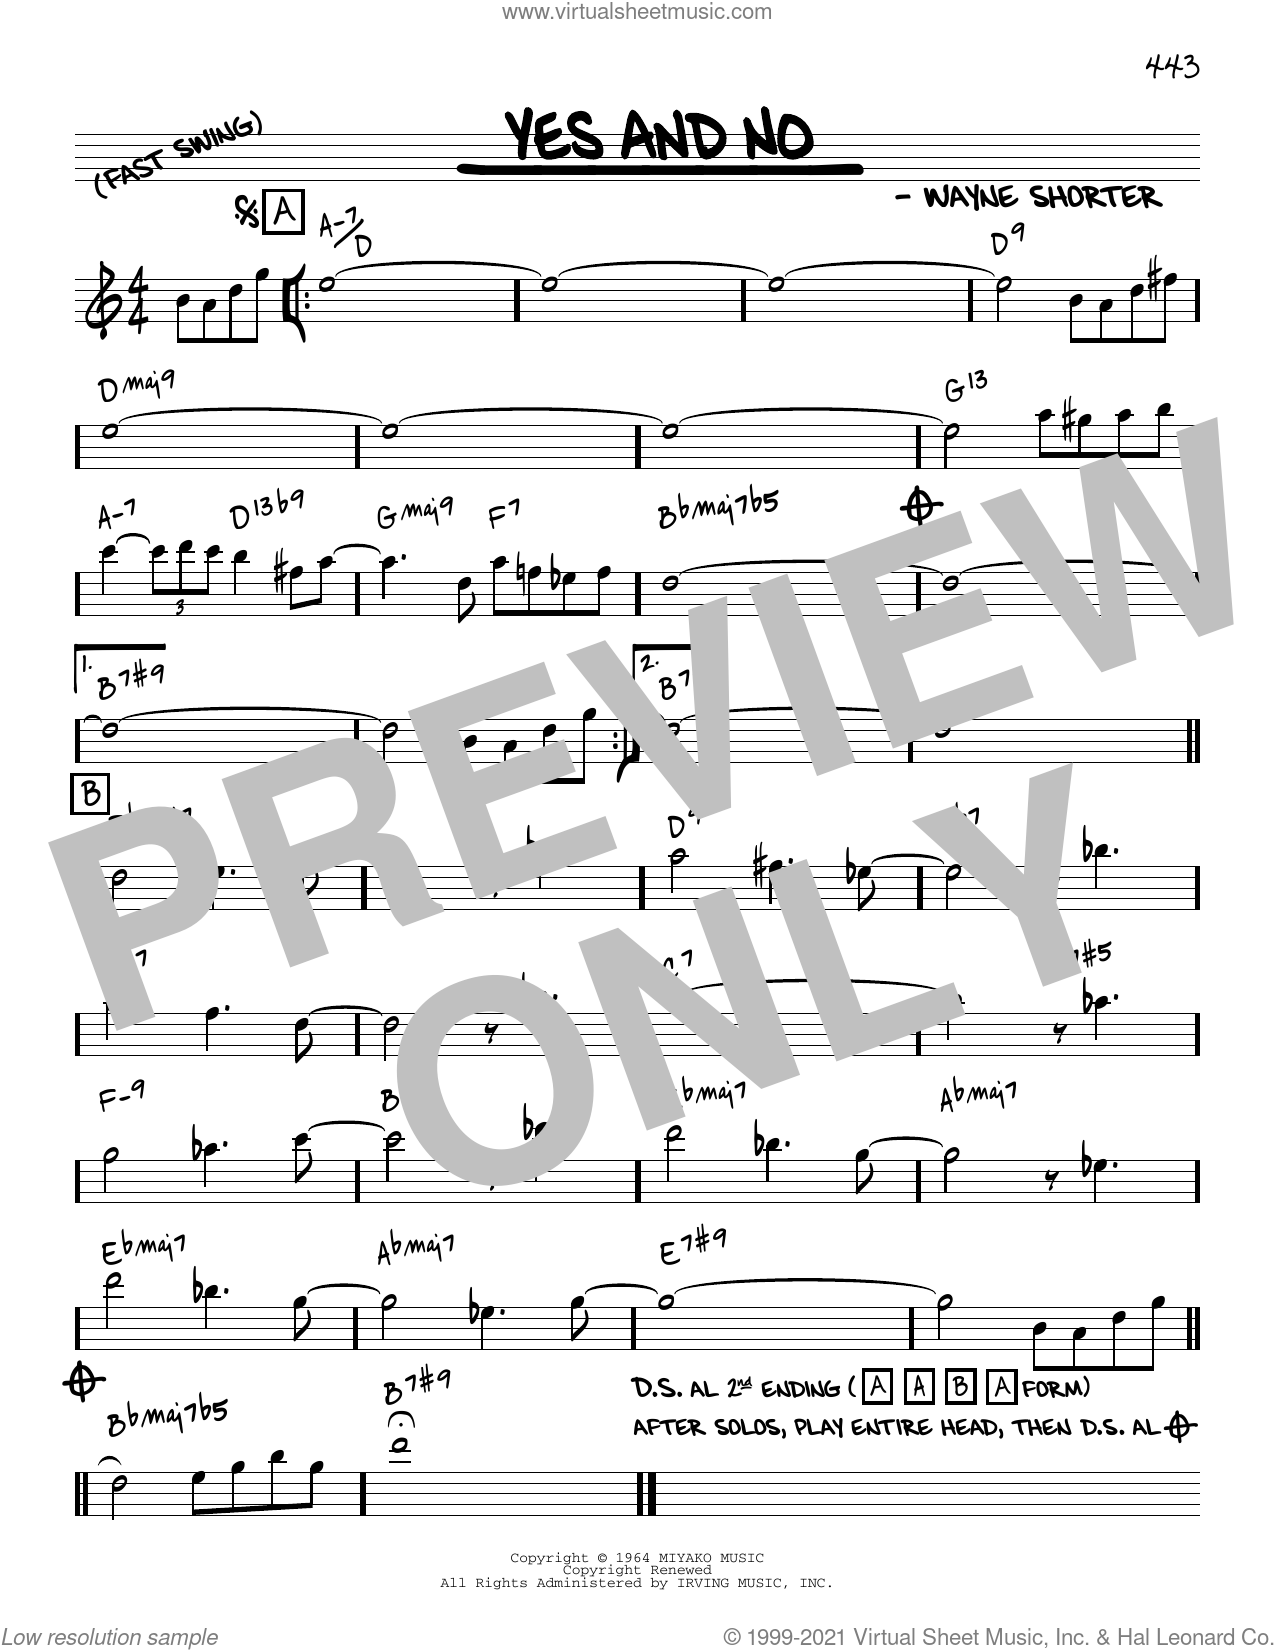 Yes And No [Reharmonized version] (arr. Jack Grassel) sheet music for voice and other instruments (real book) by Wayne Shorter and Jack Grassel, intermediate skill level